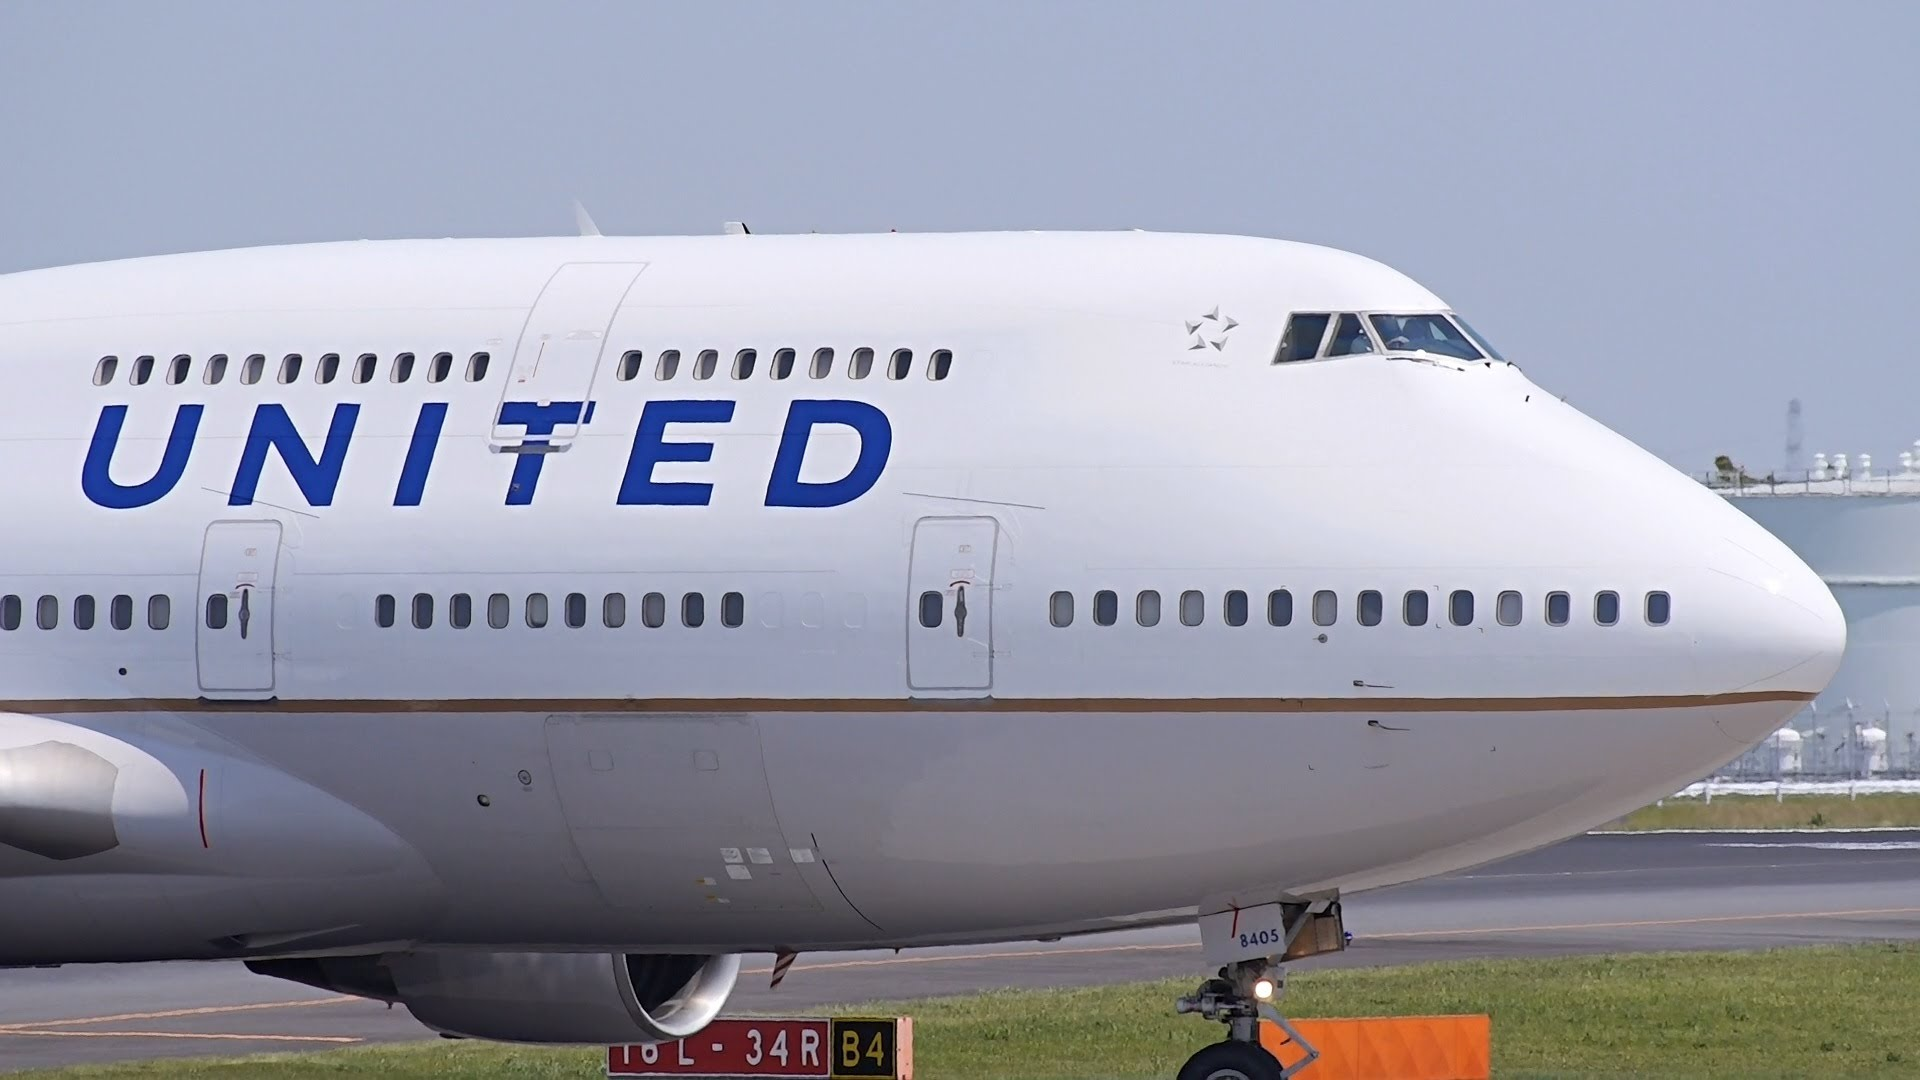 United Completes Last International Flight for Boeing 747 Fleet